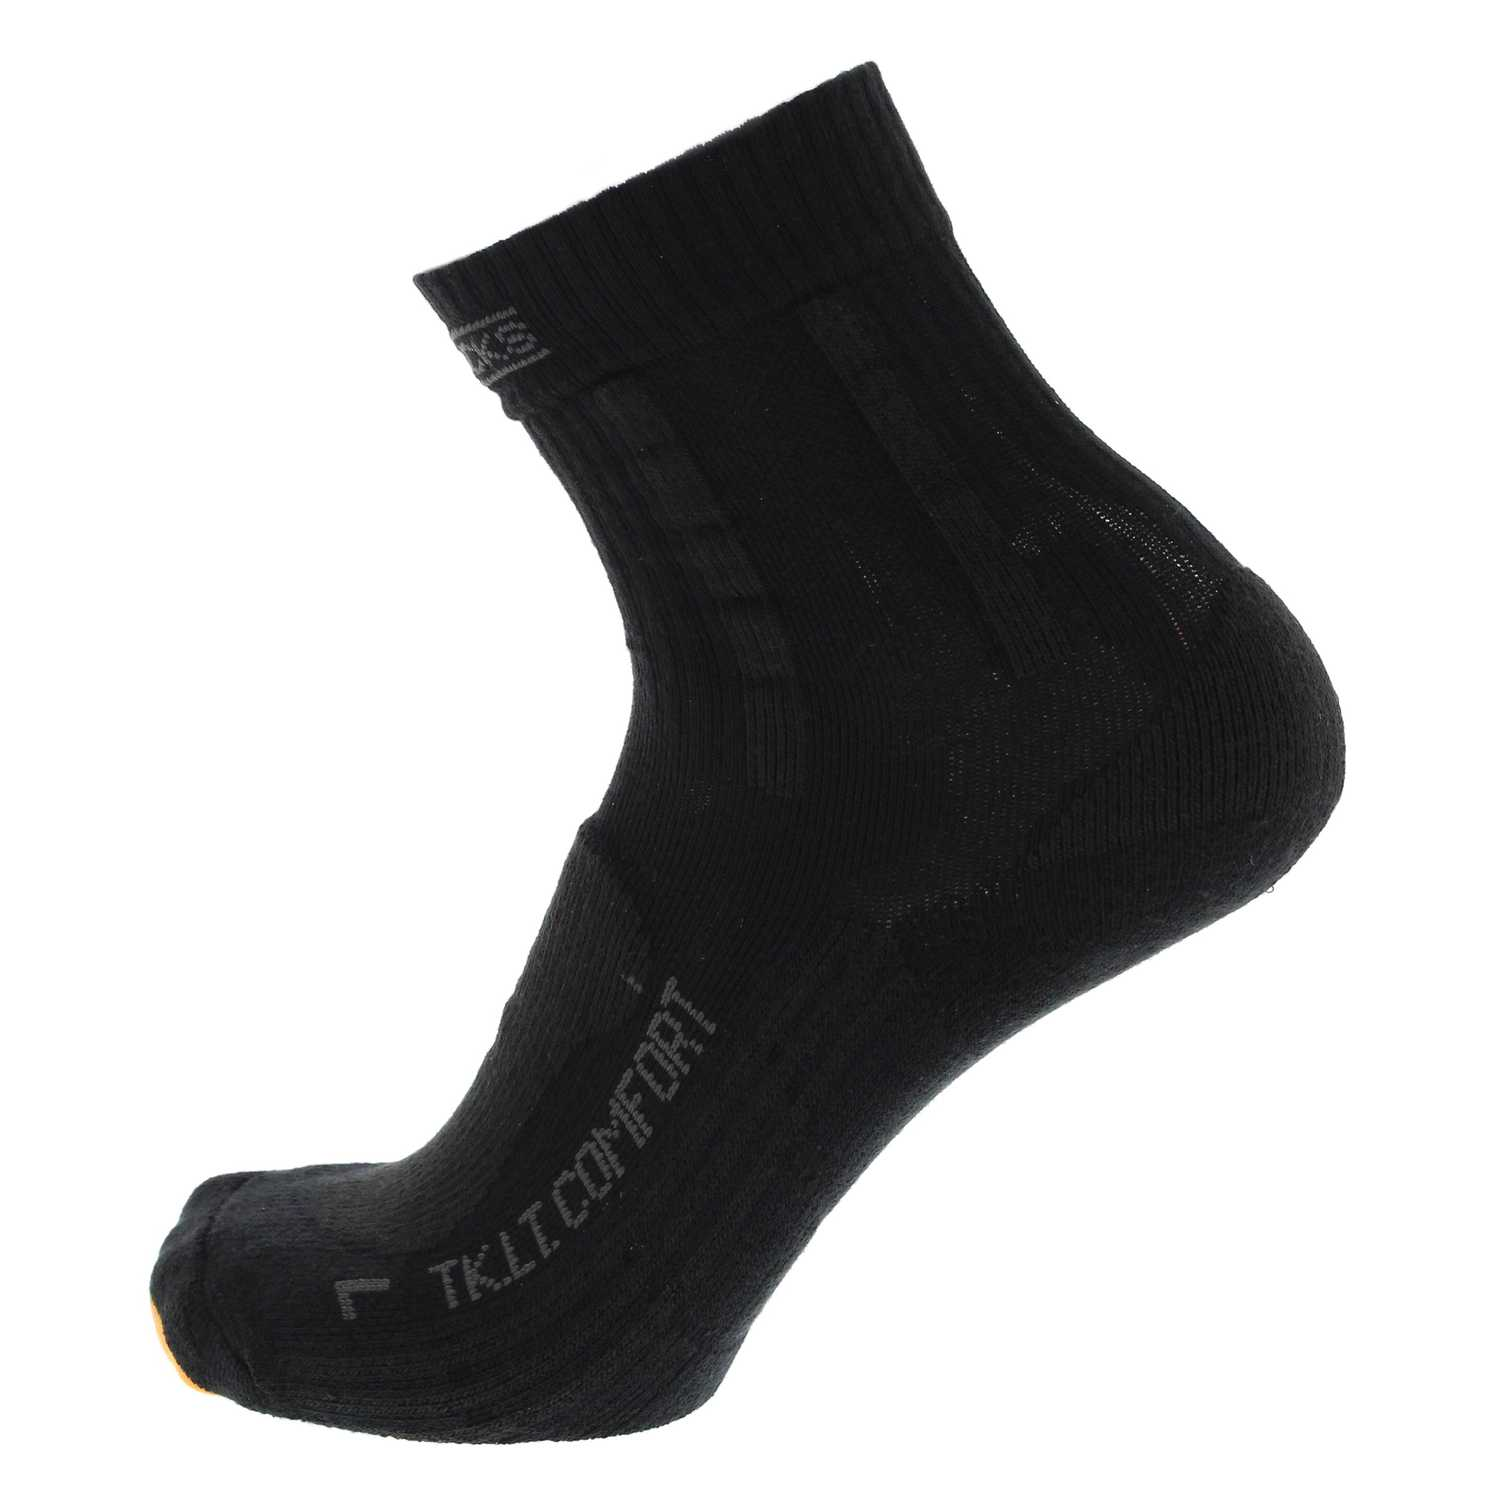 X-Socks X020290-G078 Trekking Light & Comfort Lady Charcoal/Anthracite